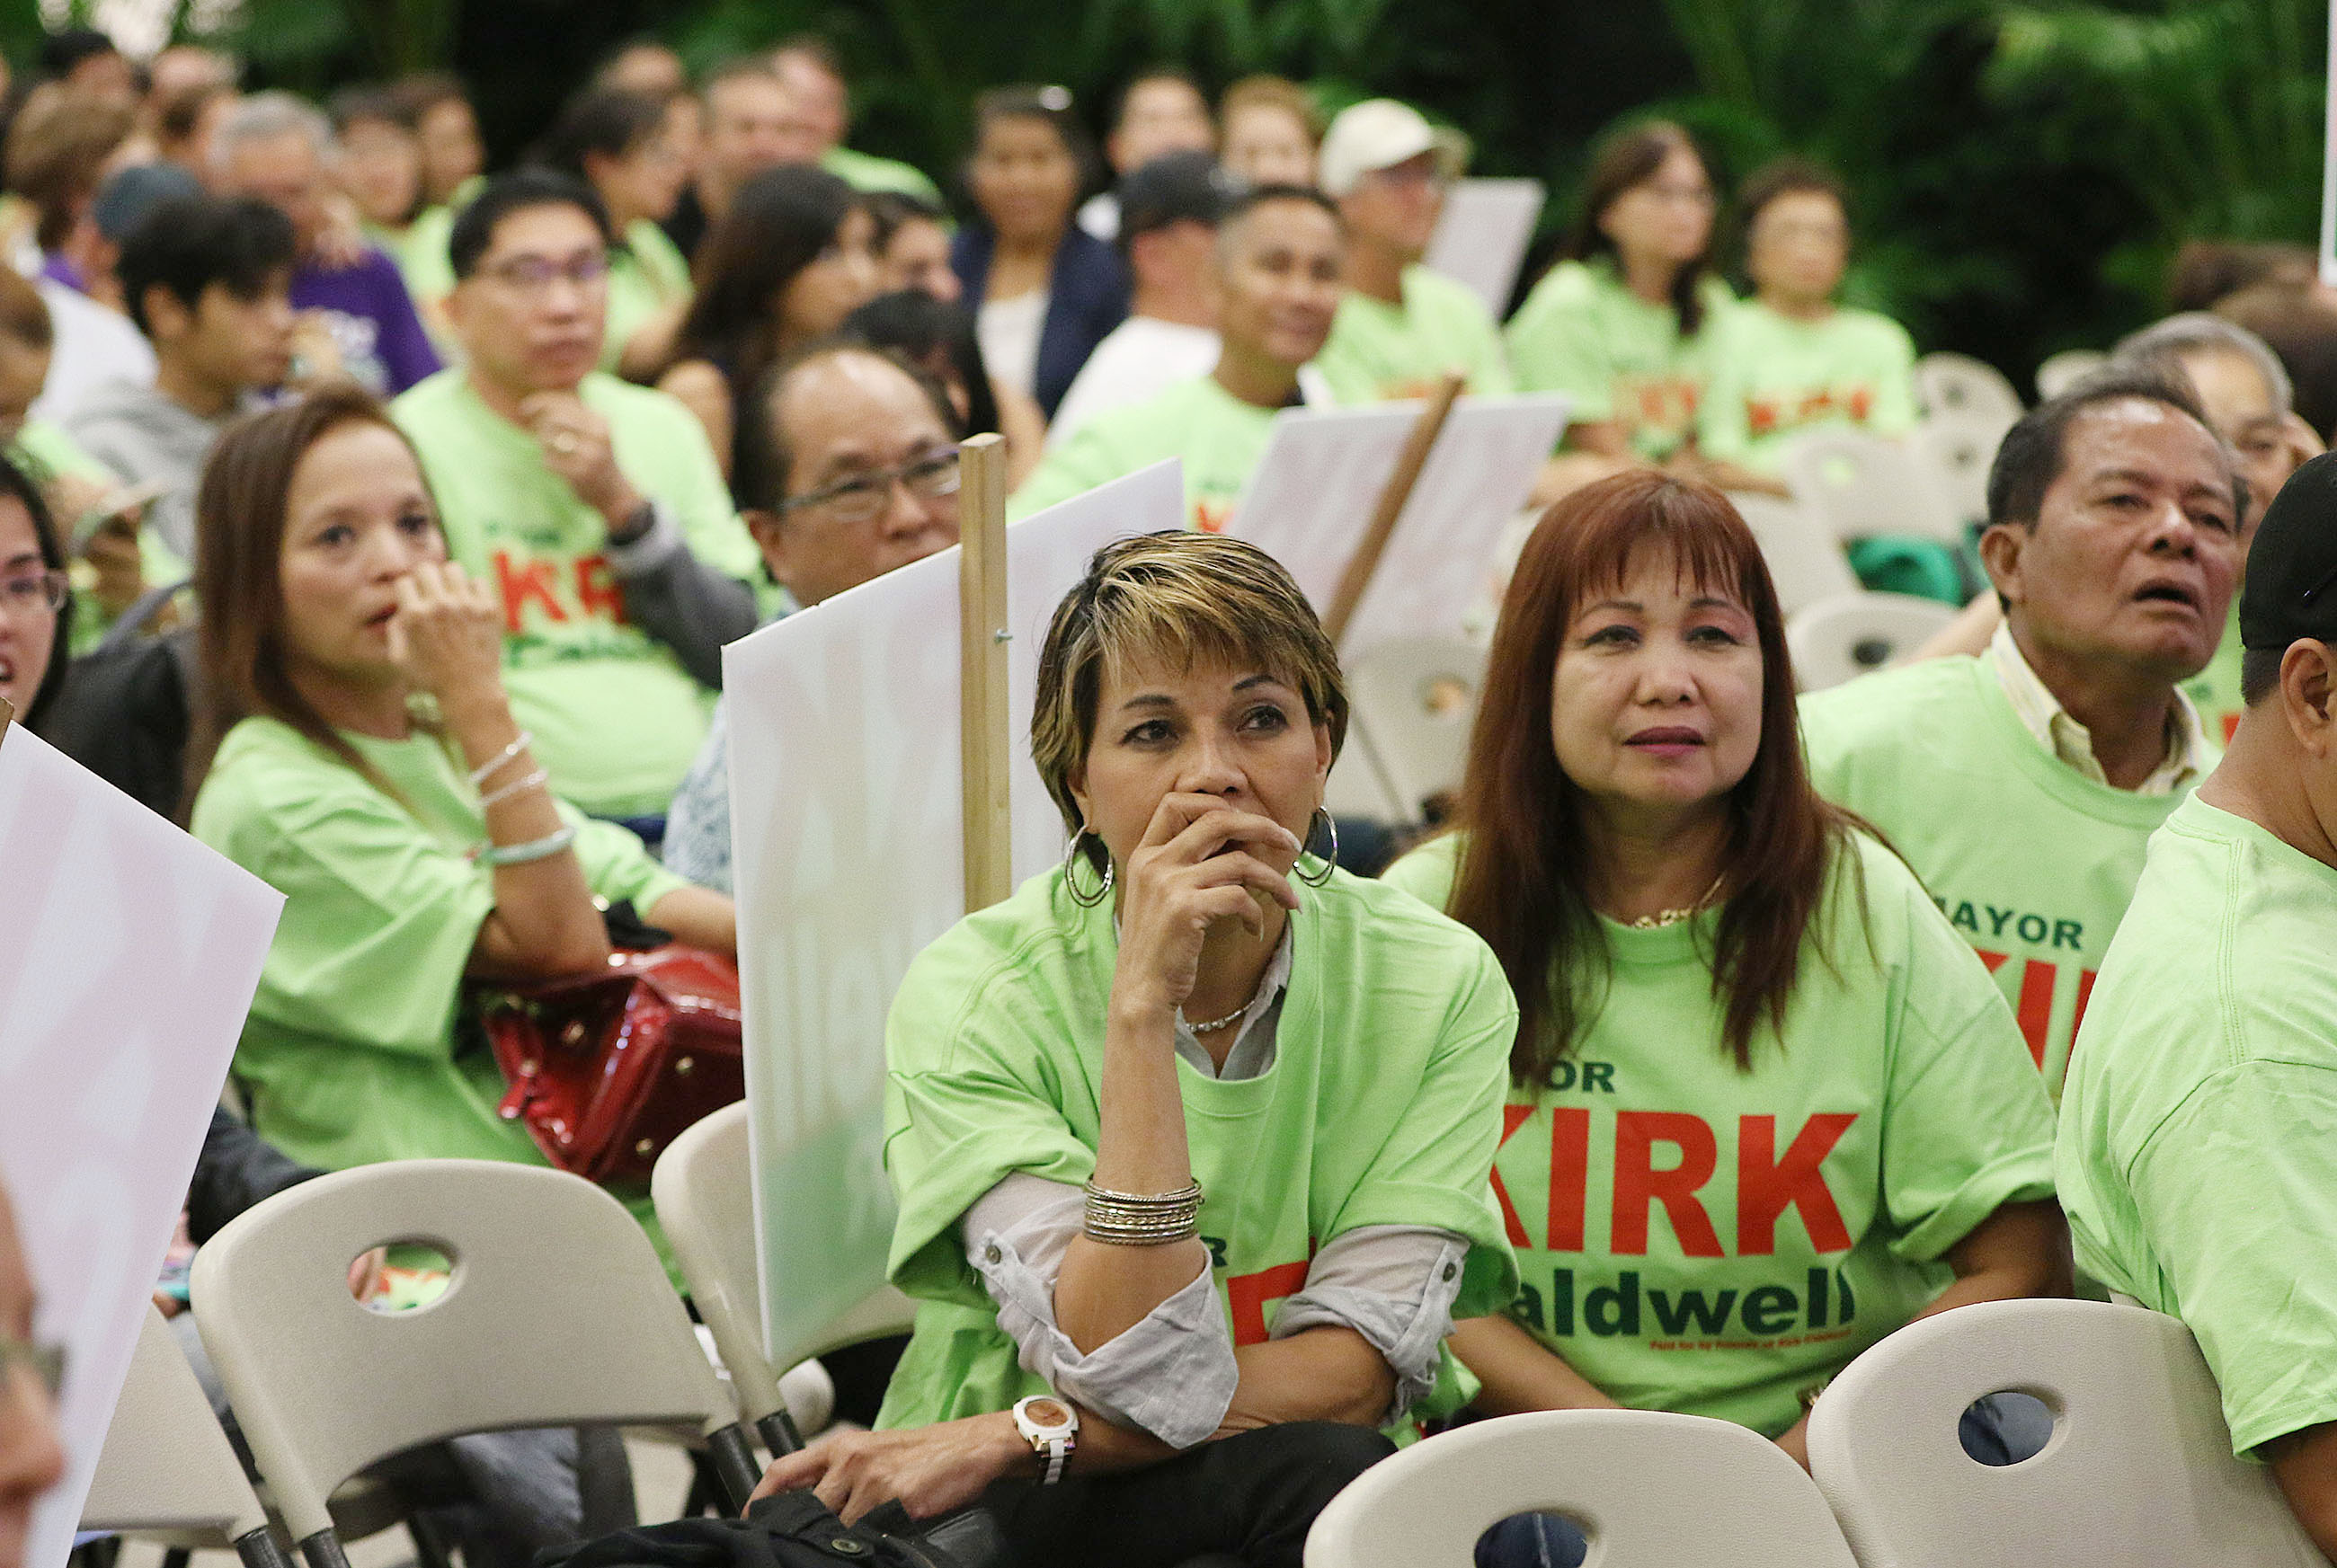 <p>Their favorite for mayor was winning, but people at Caldwell headquarters grew pensive as national returns showed an upset brewing in the presidential race. — Cory Lum/Civil Beat</p>